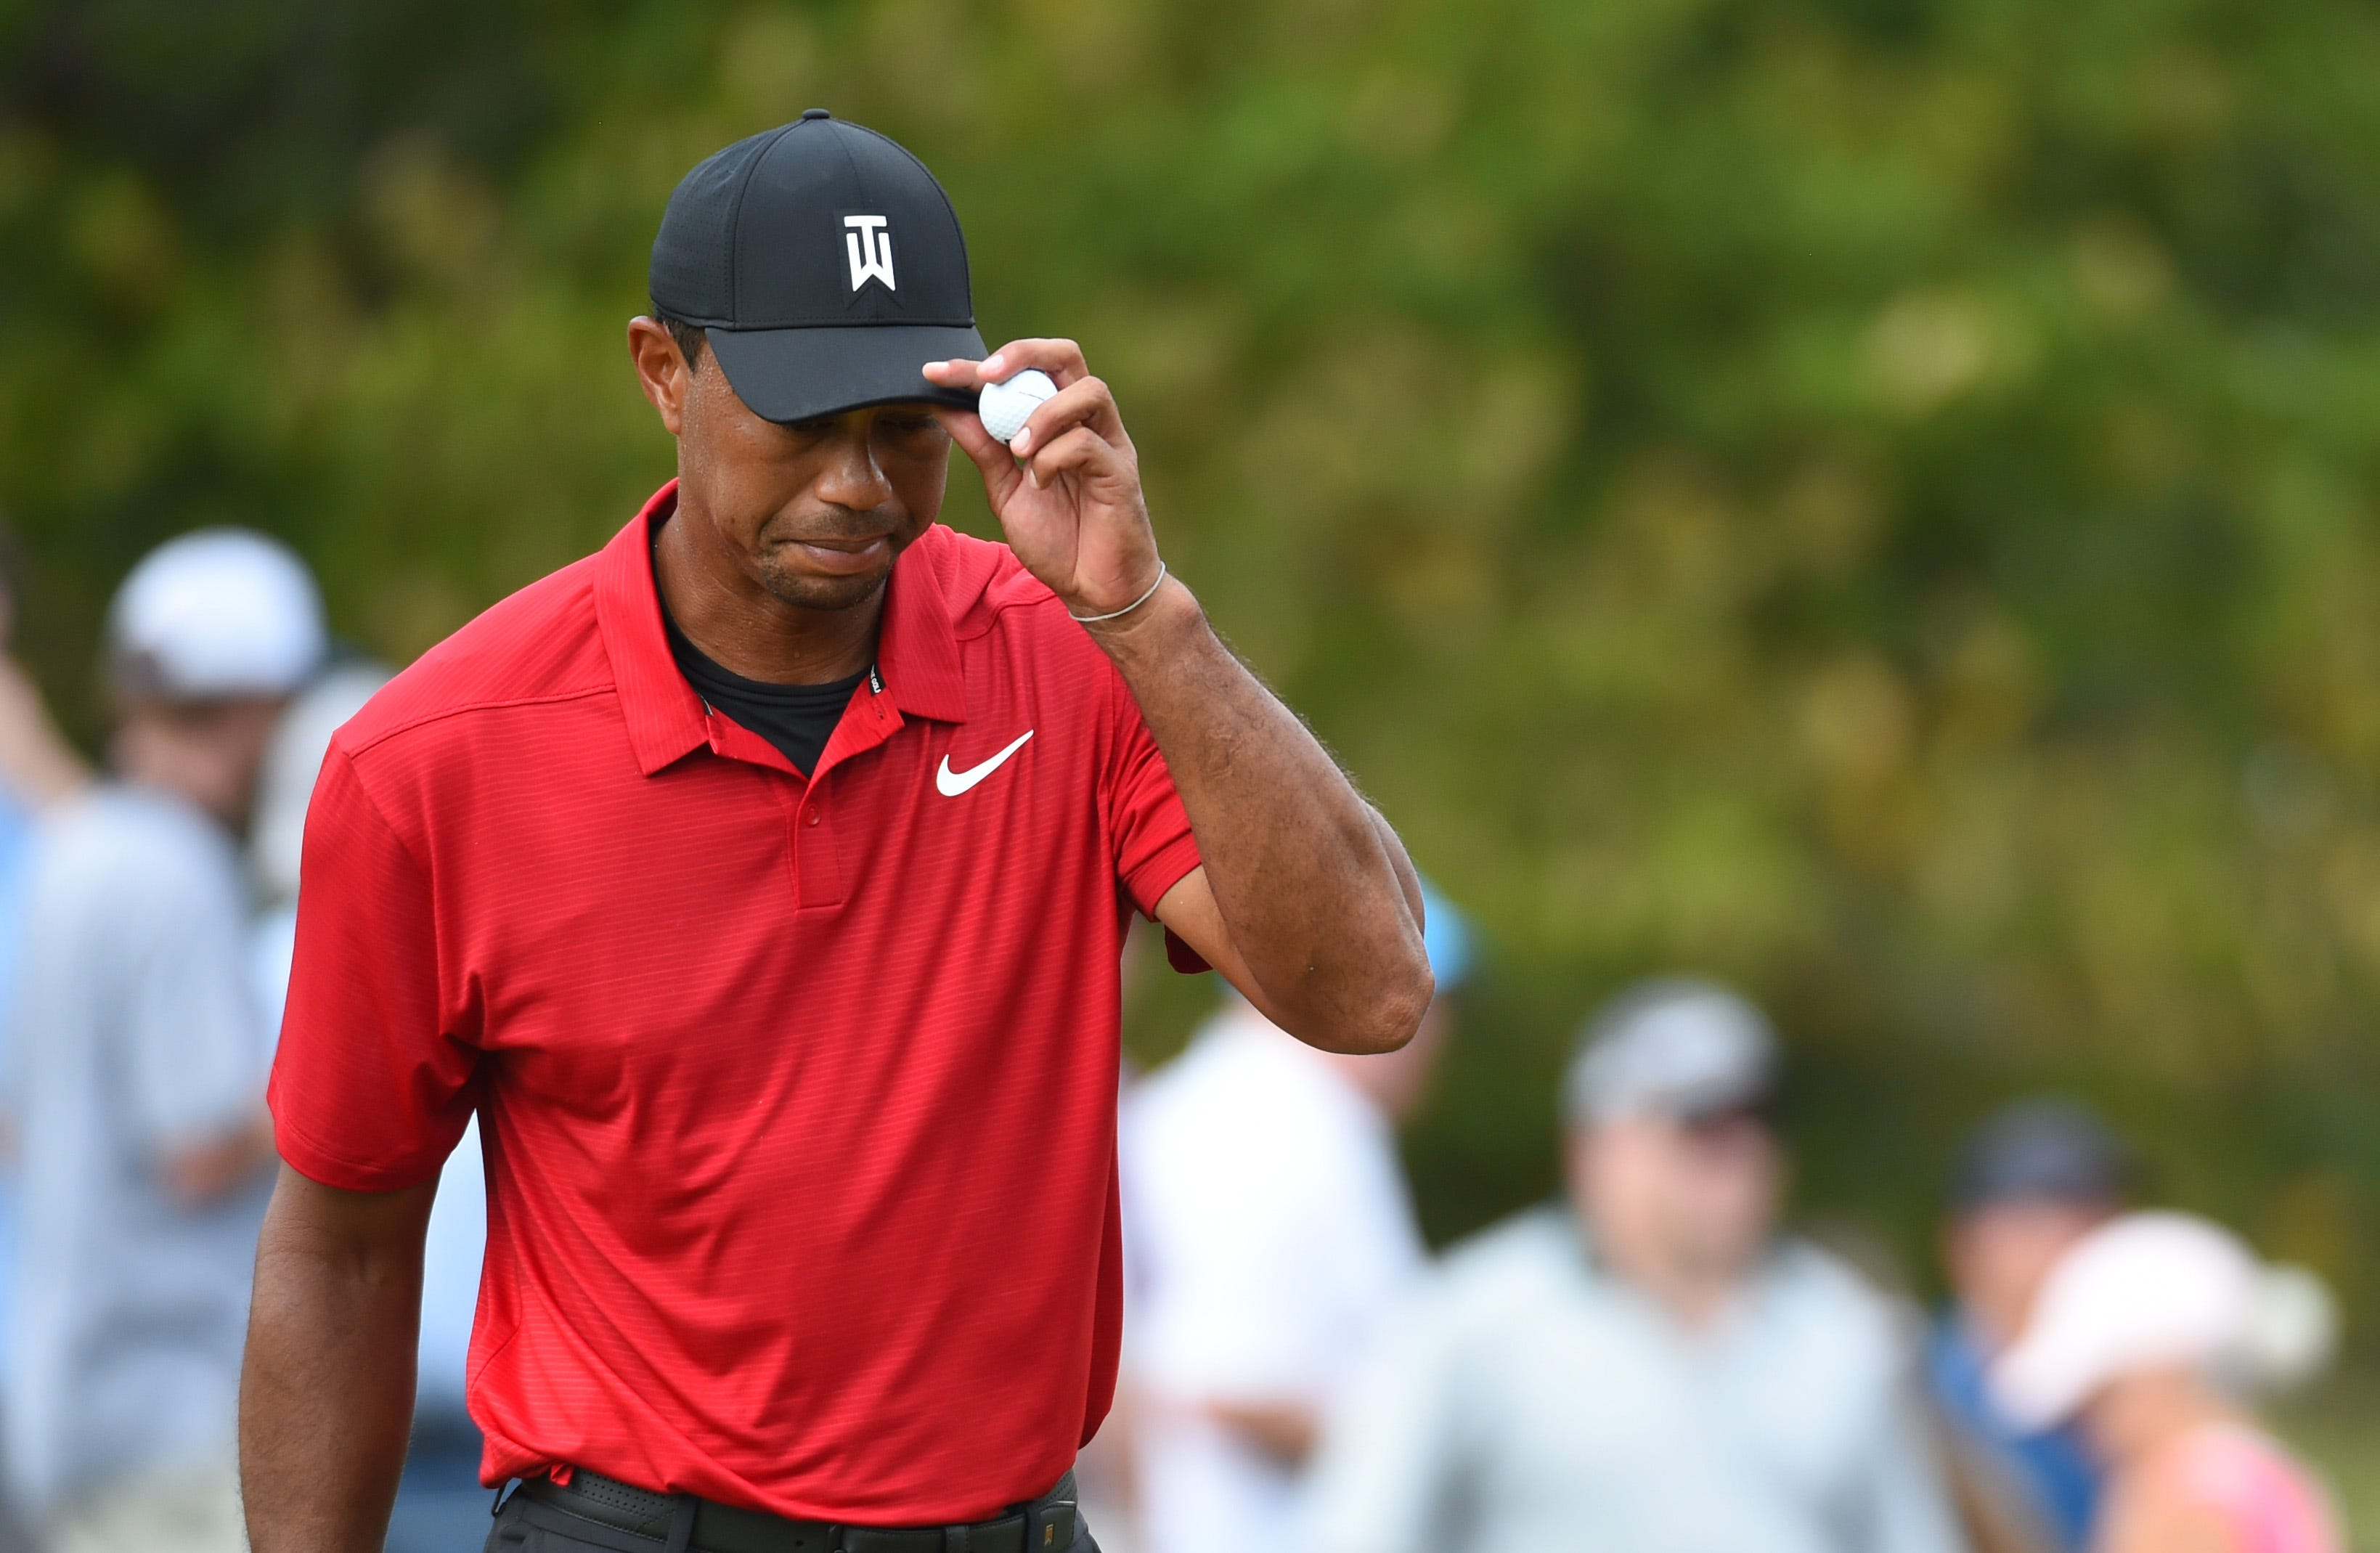 usatoday.com - Steve DiMeglio, USA TODAY - Tiger Woods wins Tour Championship by two shots, for his first victory in five years